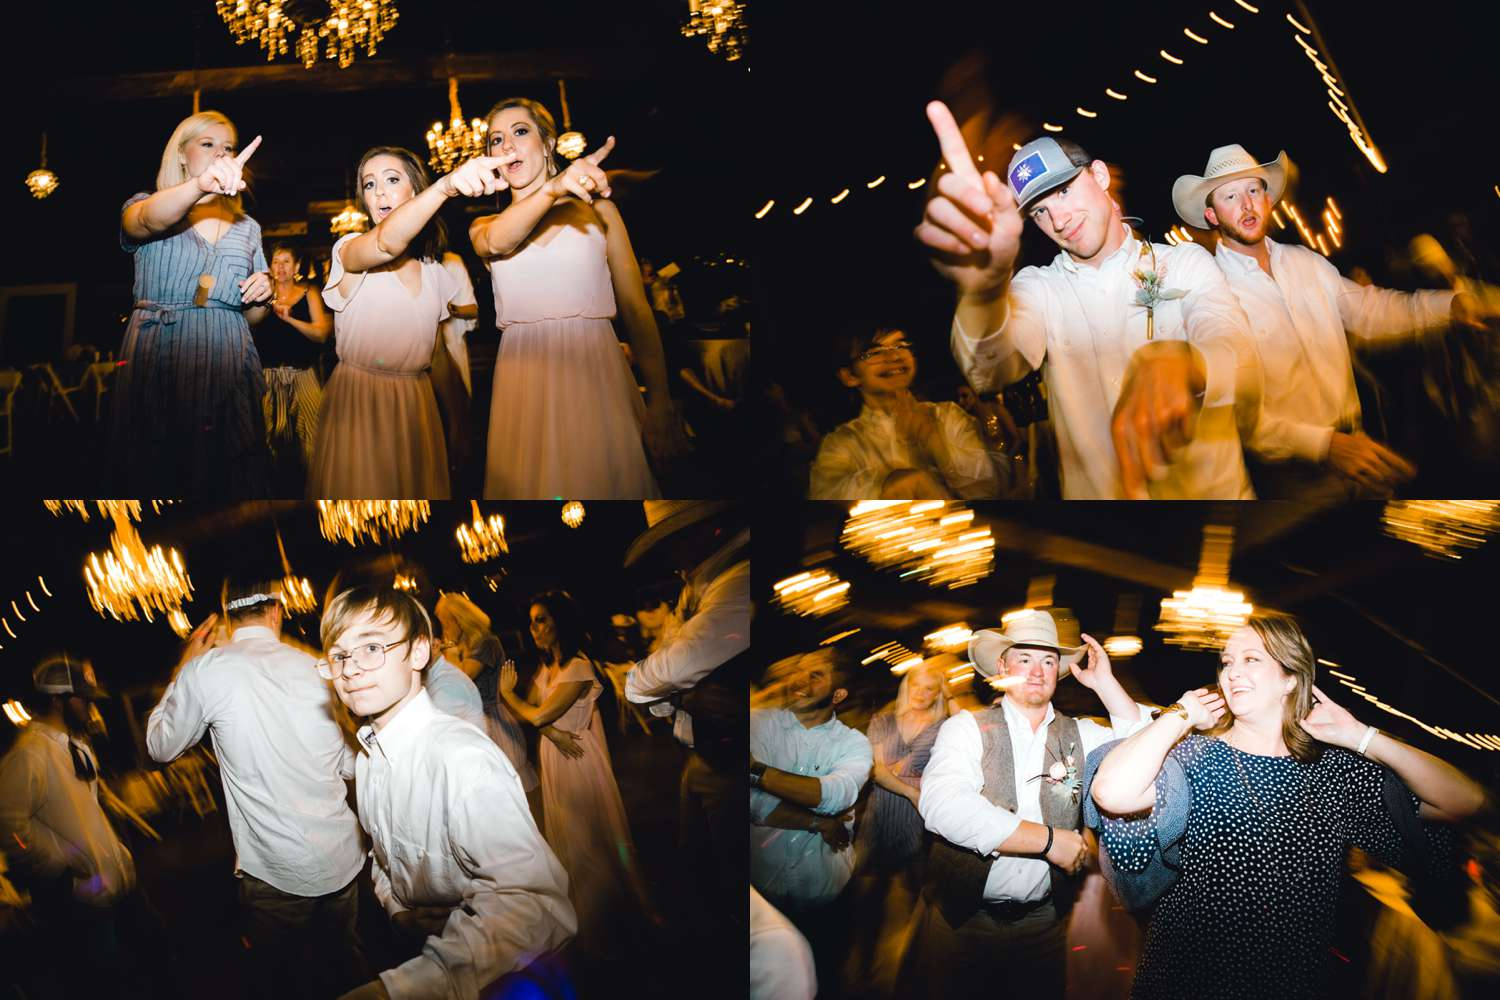 SARAH+TREVOR+BADGETT+SPARROW+CREEK+GRAHAM+TEXAS+ALLEEJ+WEDDINGS_0164.jpg